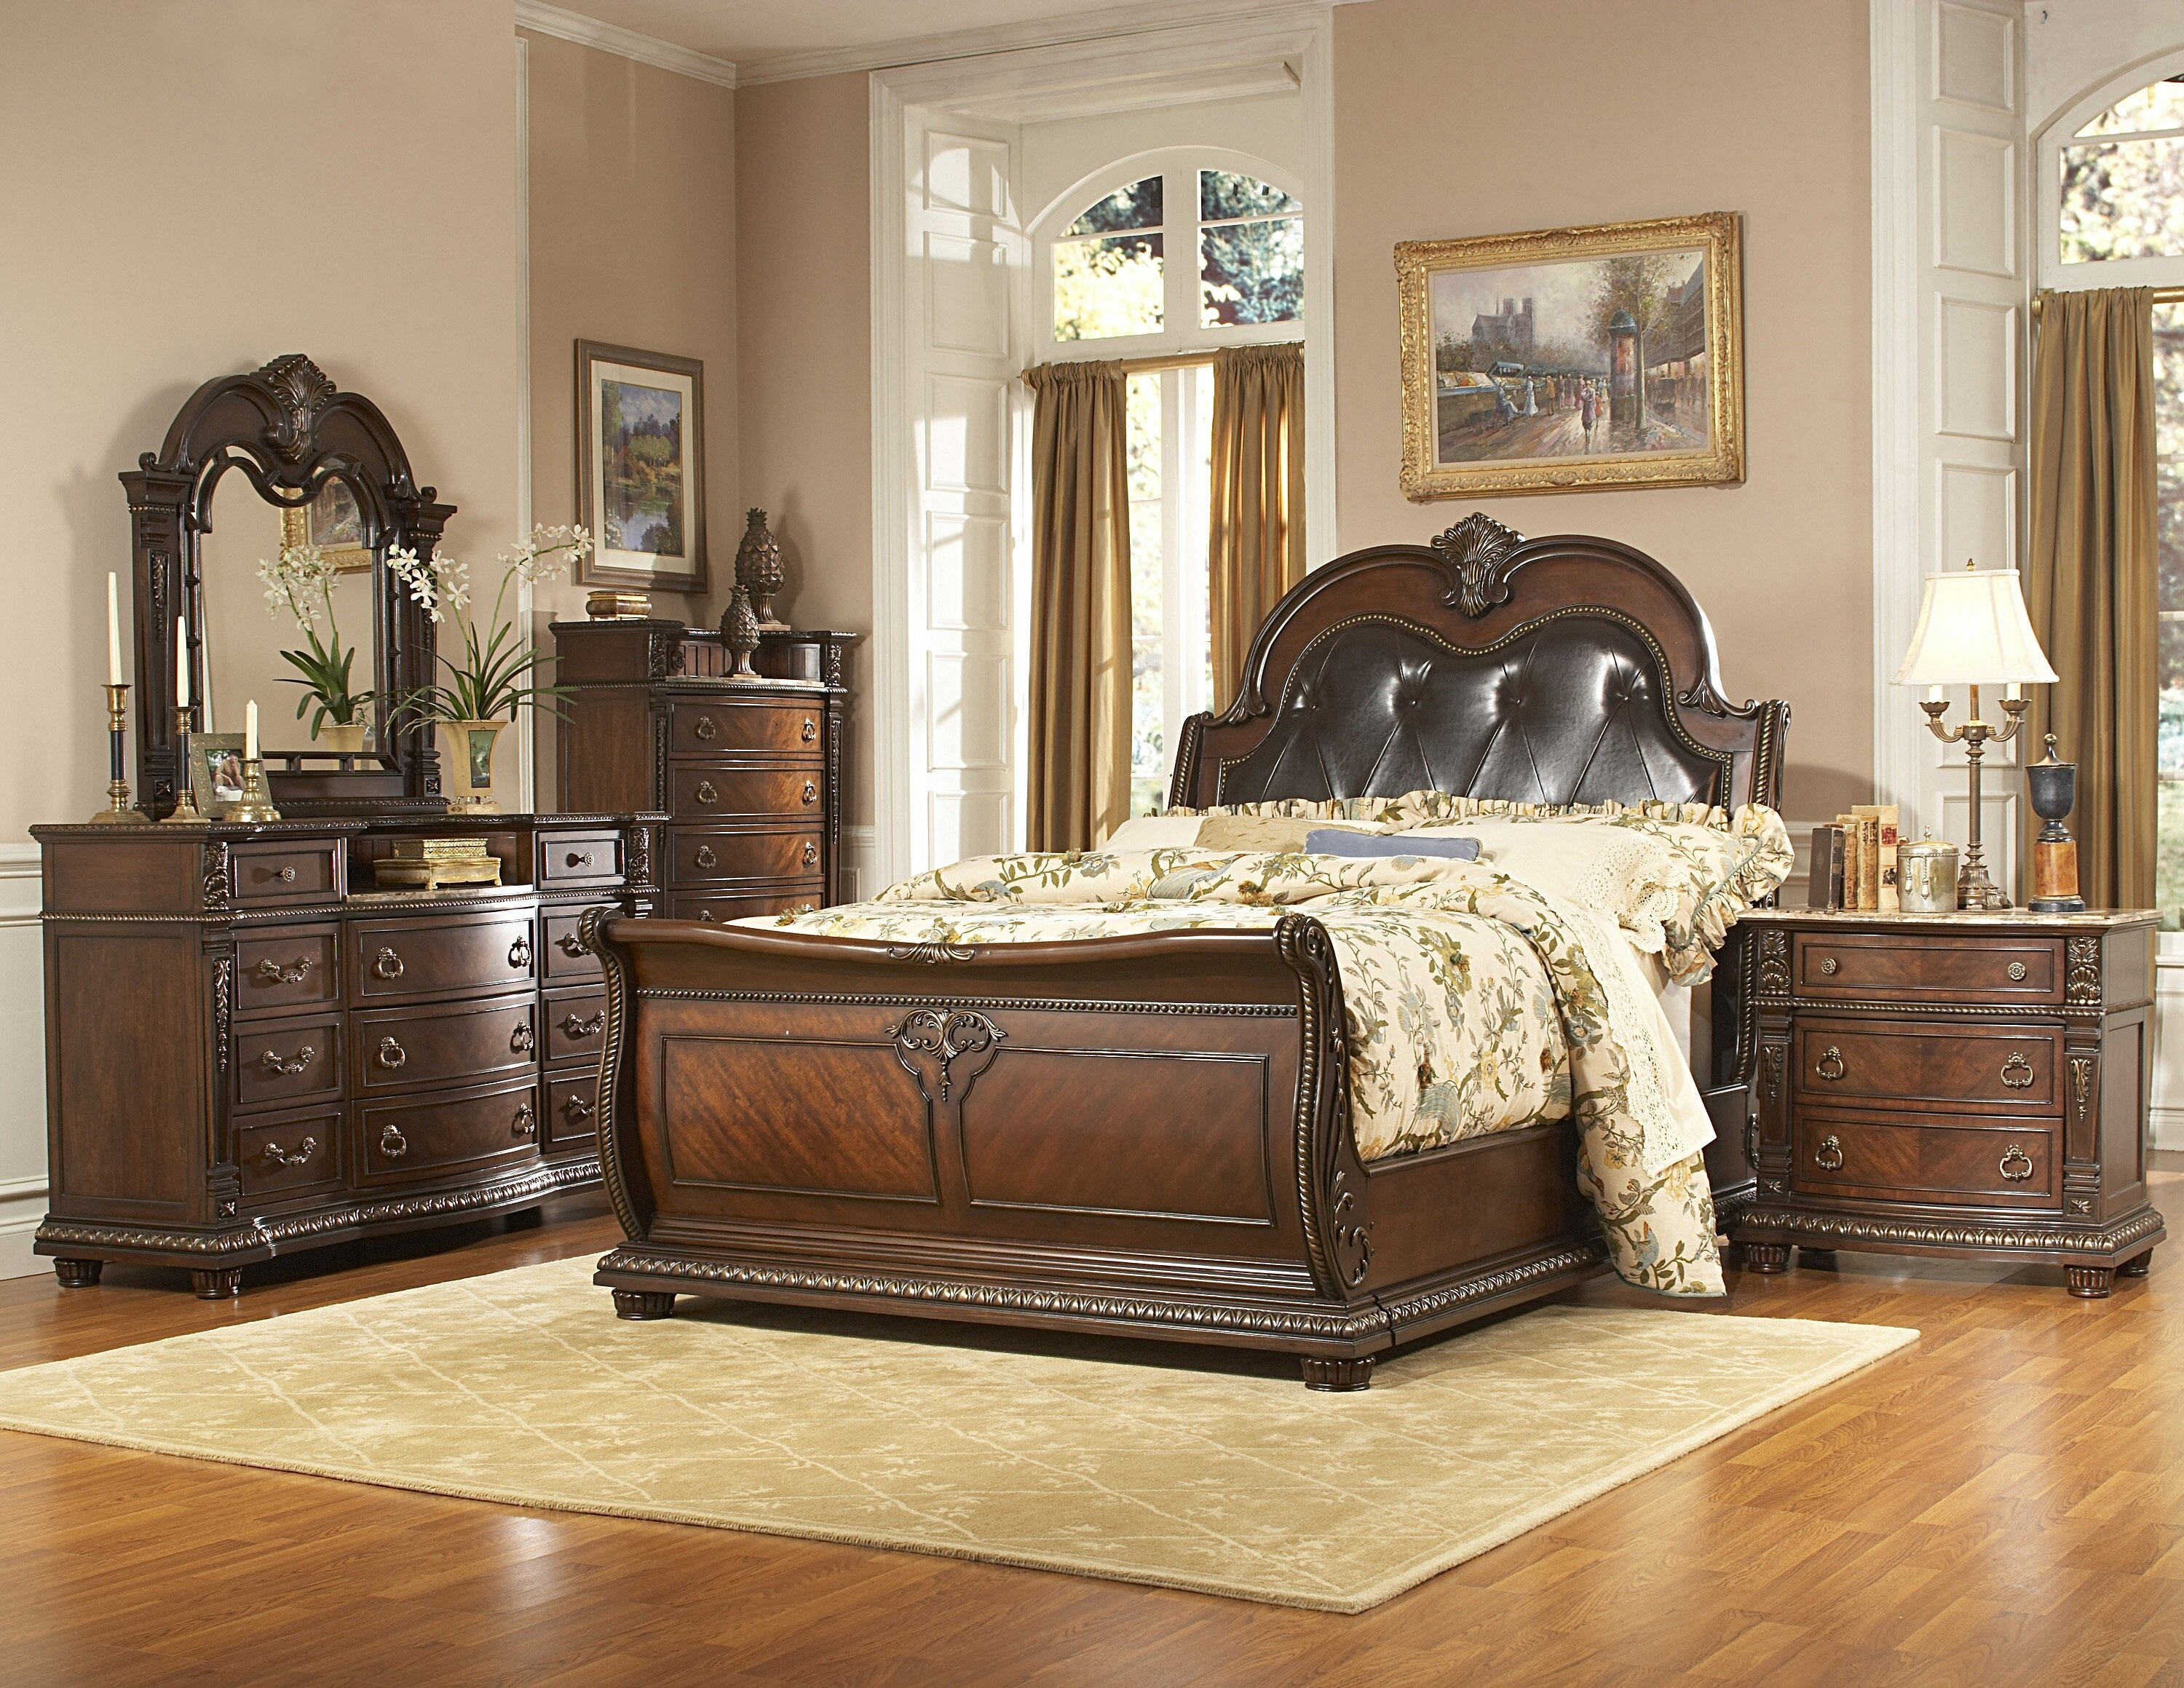 Queen Bedroom Set Craigslist | Craigslist Chairs for Sale | Craigslist Bedroom Sets